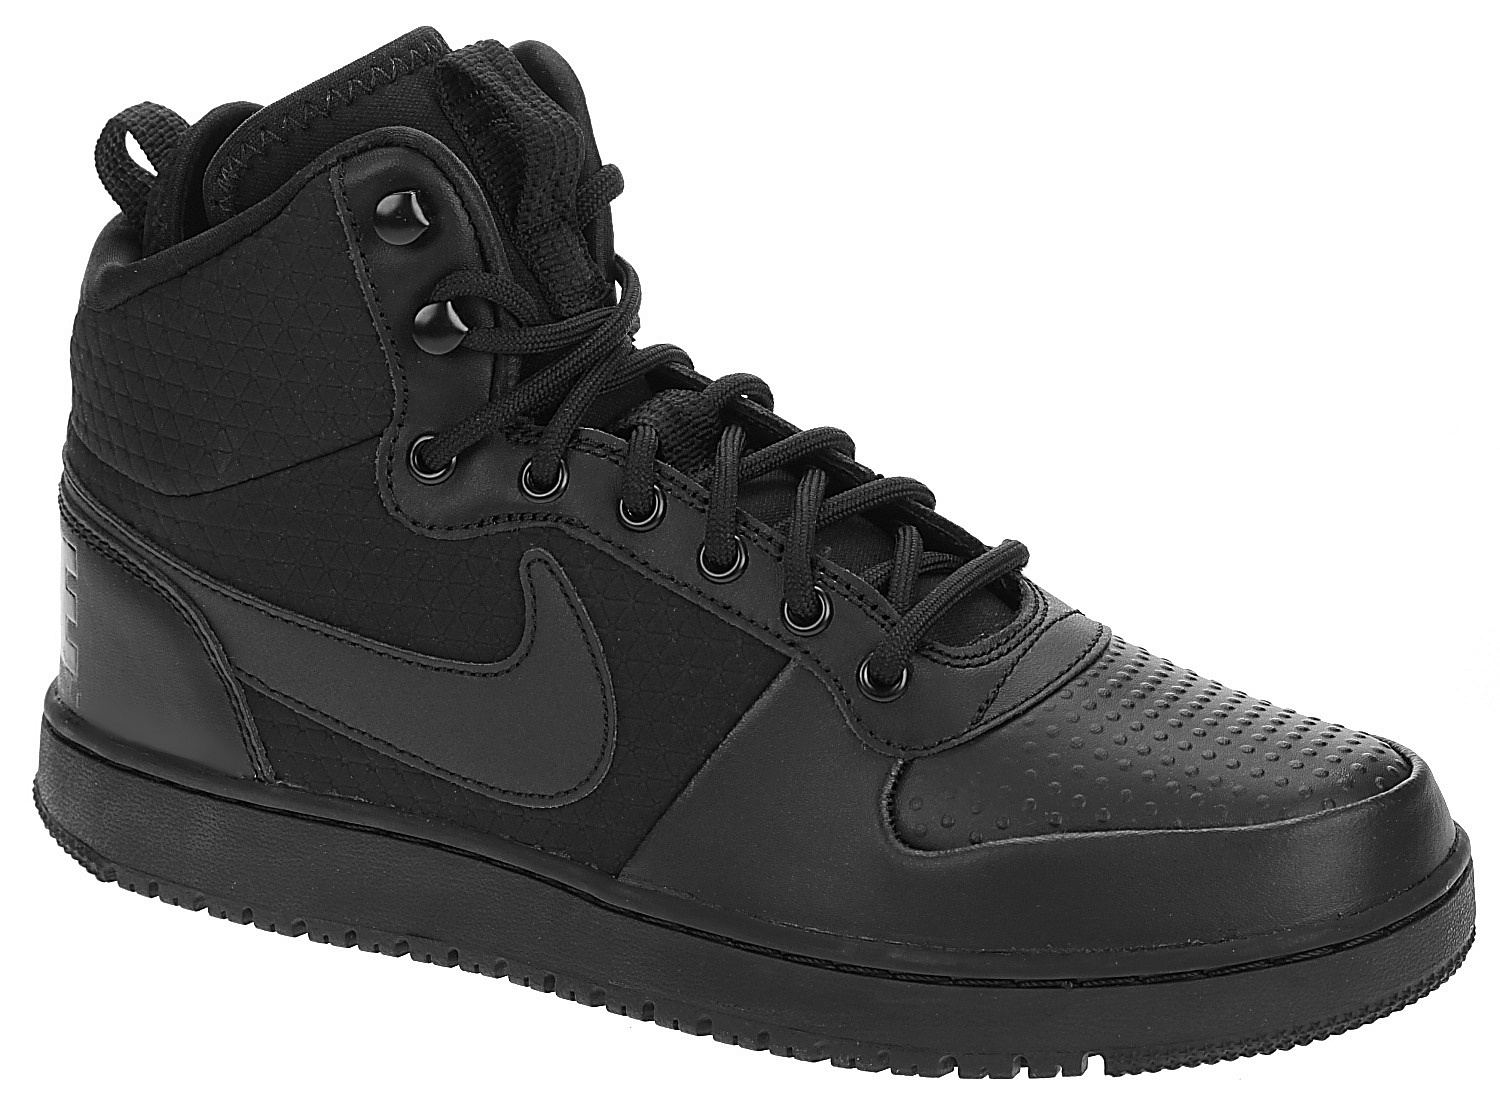 topánky Nike Court Borough Mid Winter - Black Black - Snowboard shop ... 7d1a3ae2ac7